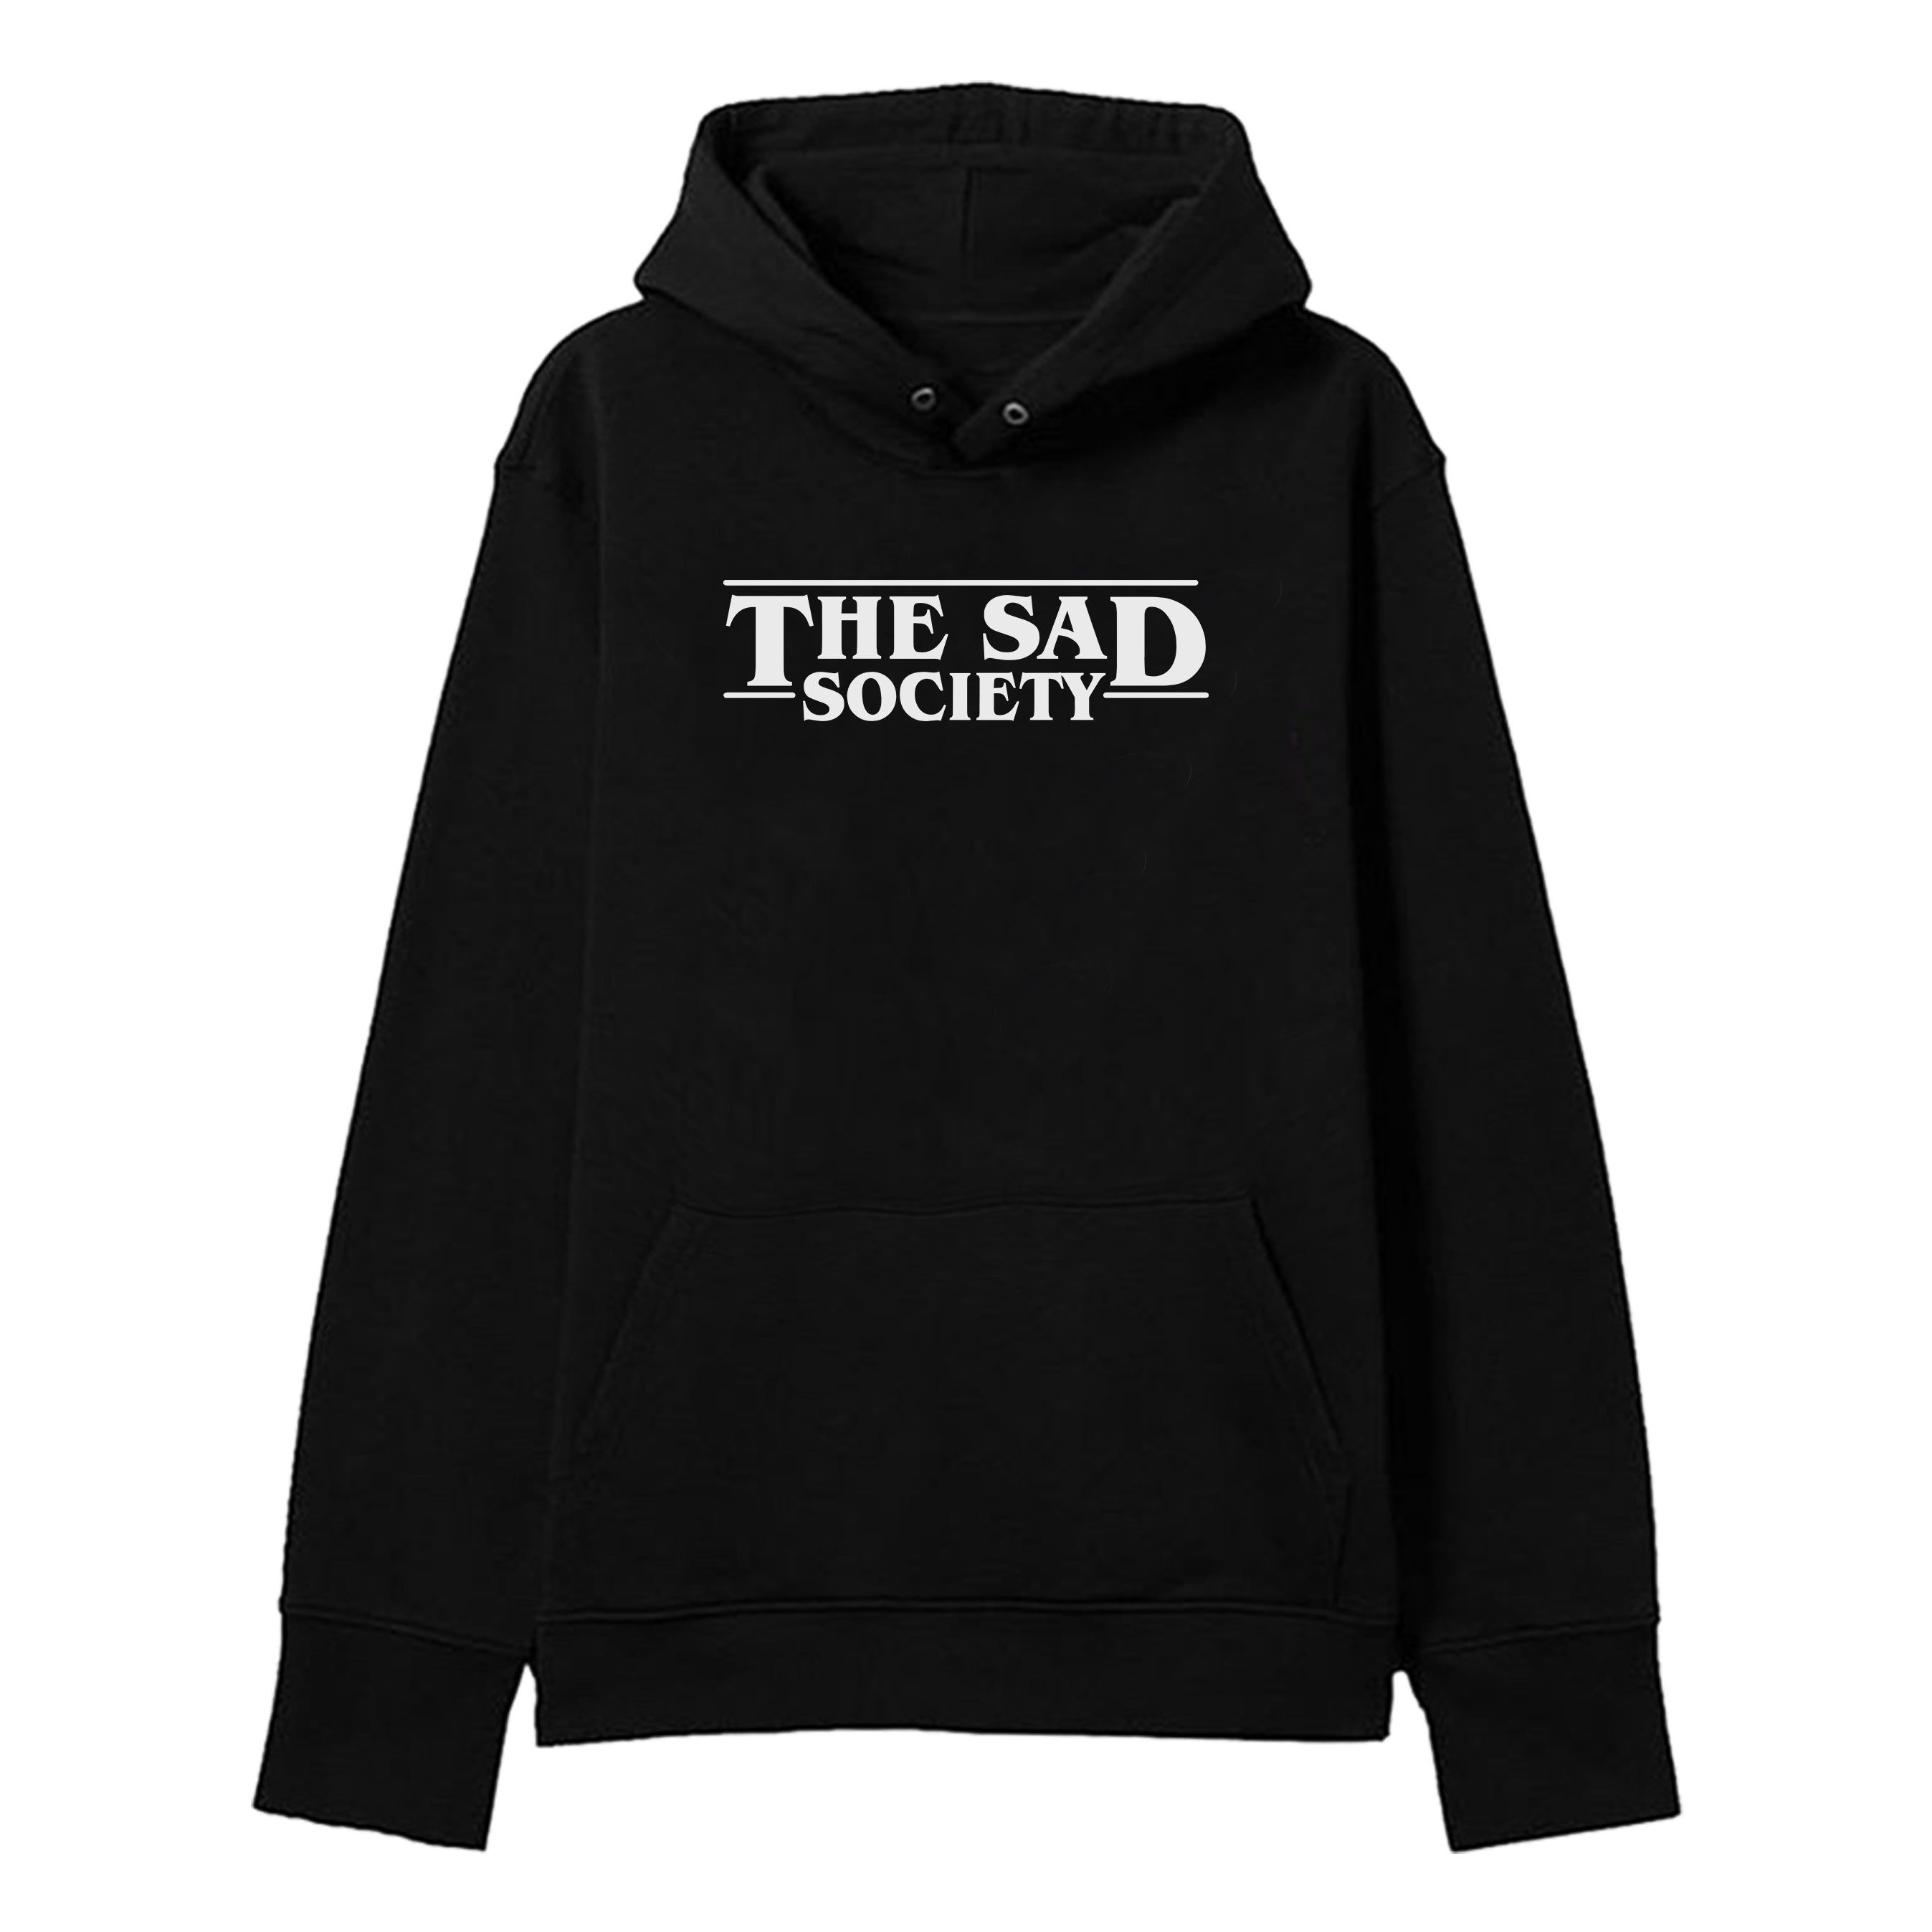 The Sad Society Hoodie